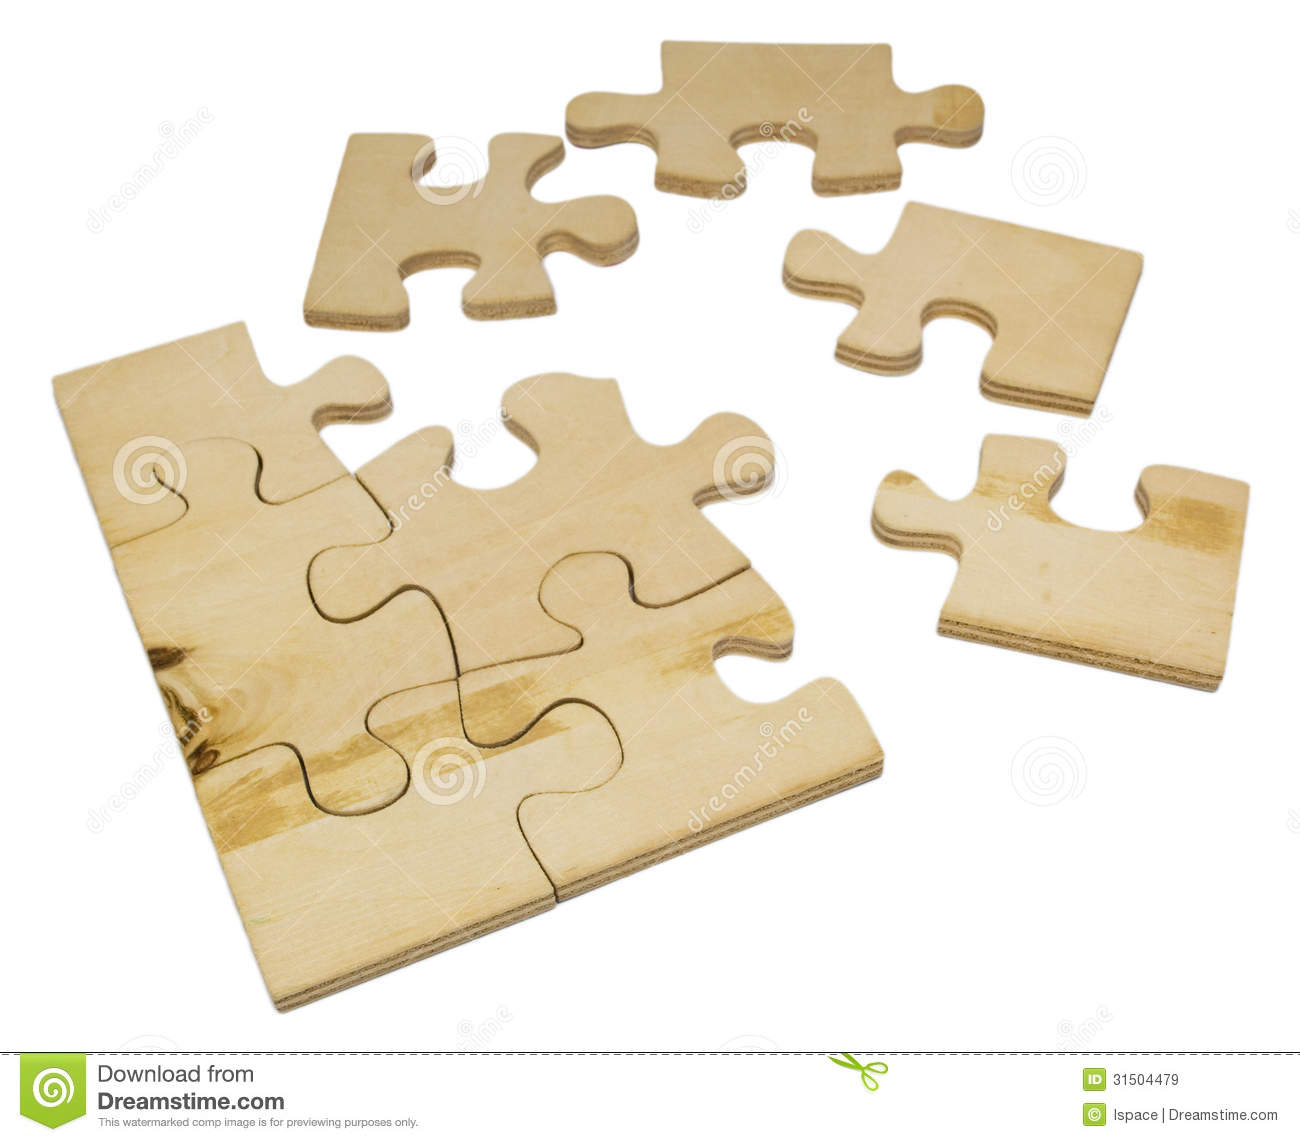 Wooden puzzle royalty free stock images image 31504479 for Puzzle cutting board plans